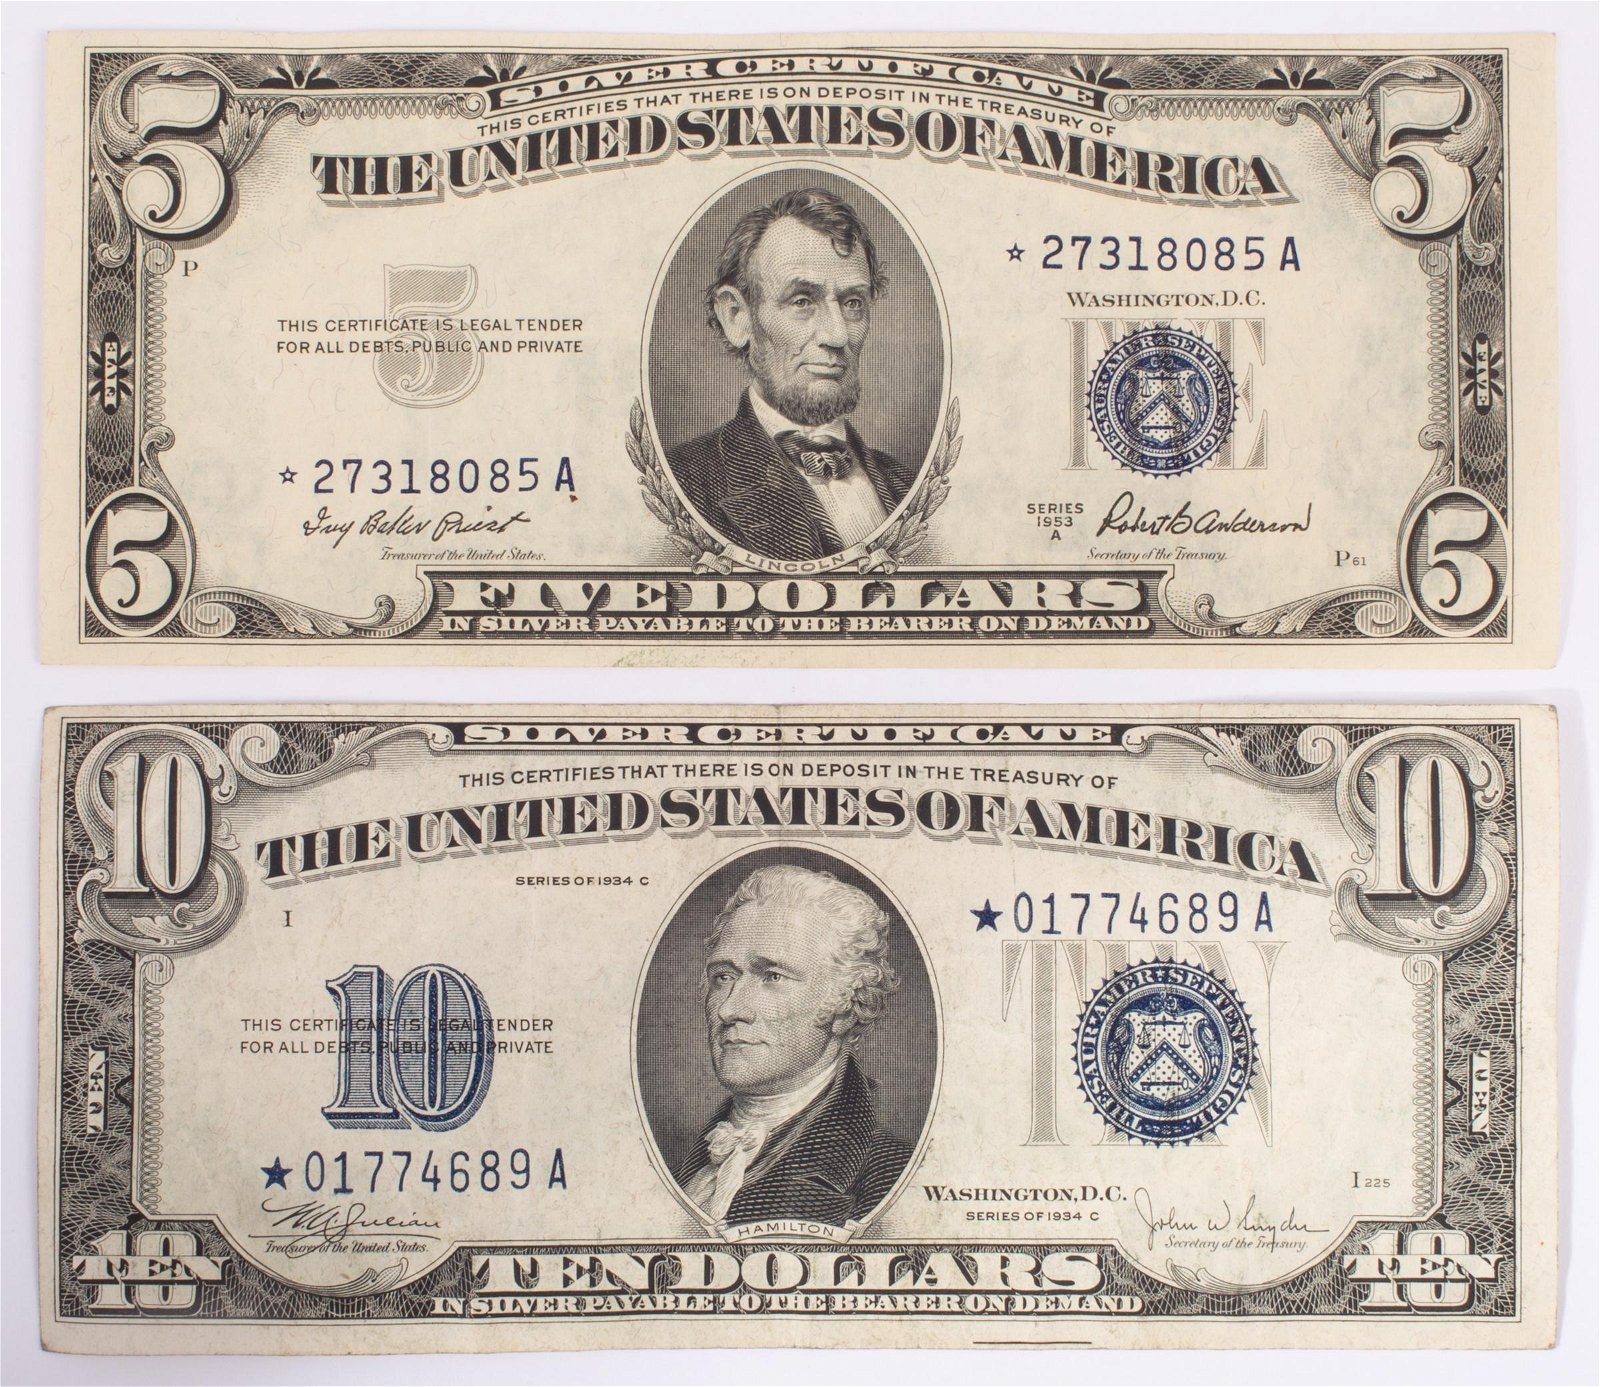 SILVER CERTIFICATES (2)